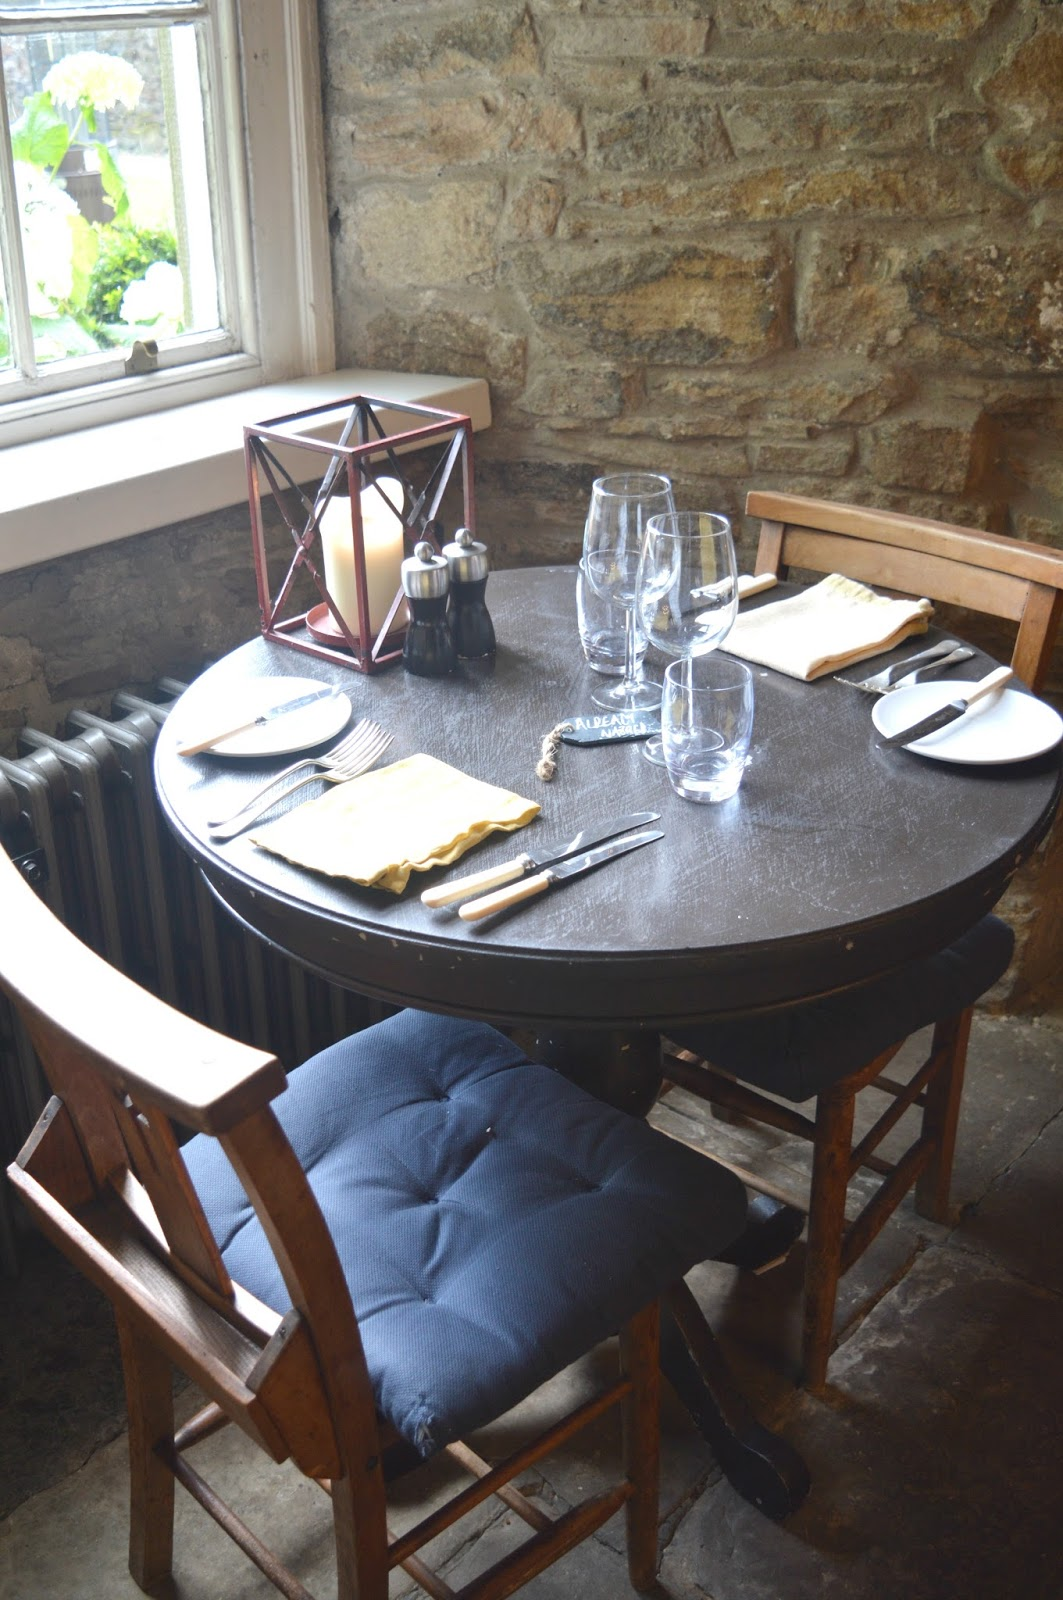 Staycation at the Lord Crewe Arms, Blanchland - Dining